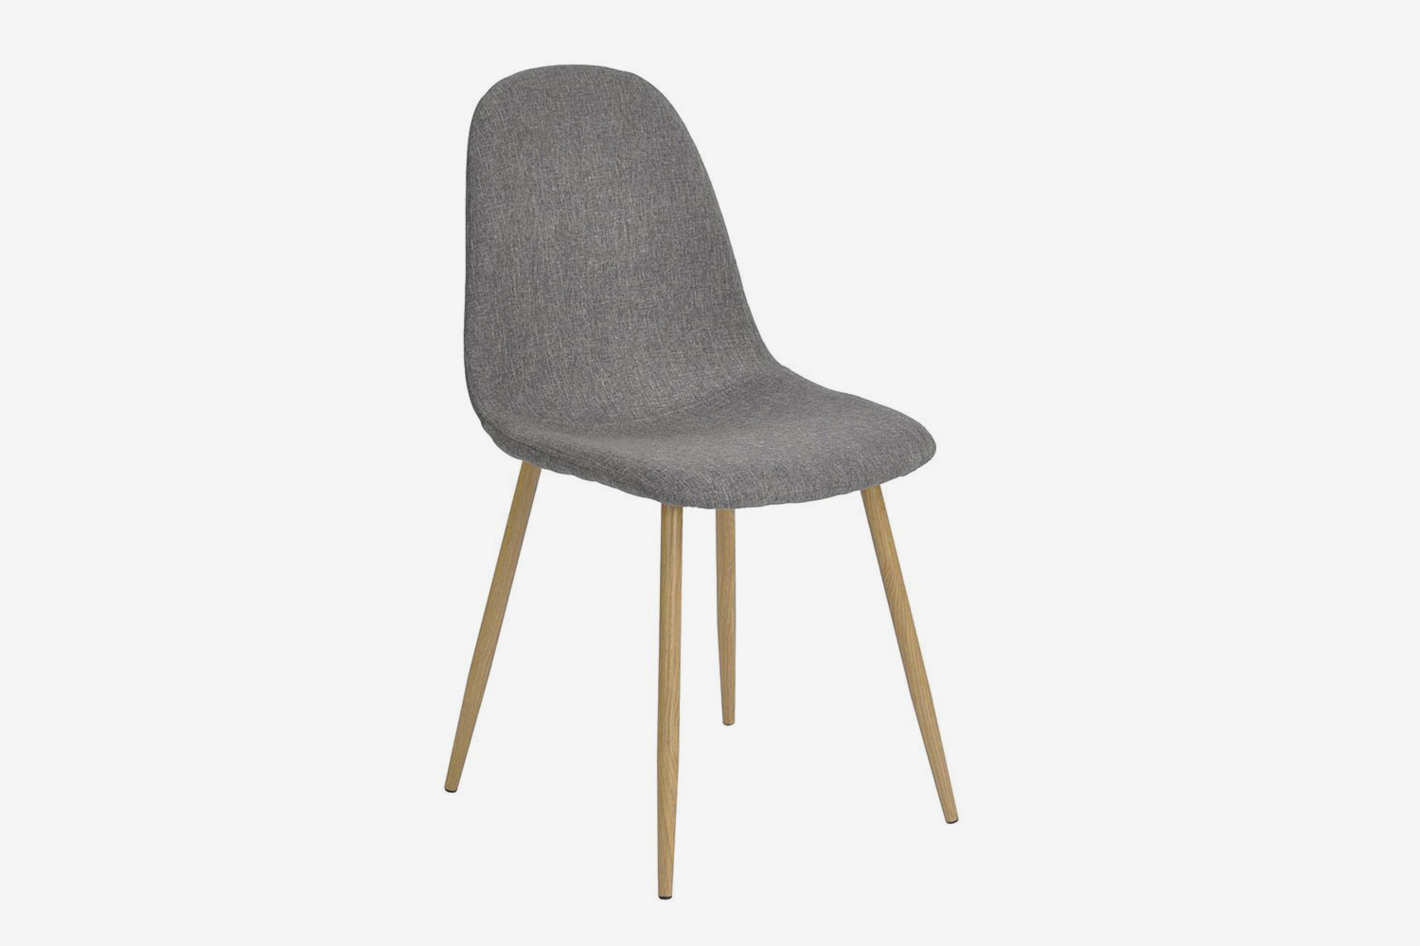 Set of 4 Fabric Eames Style Dining Side Chairs